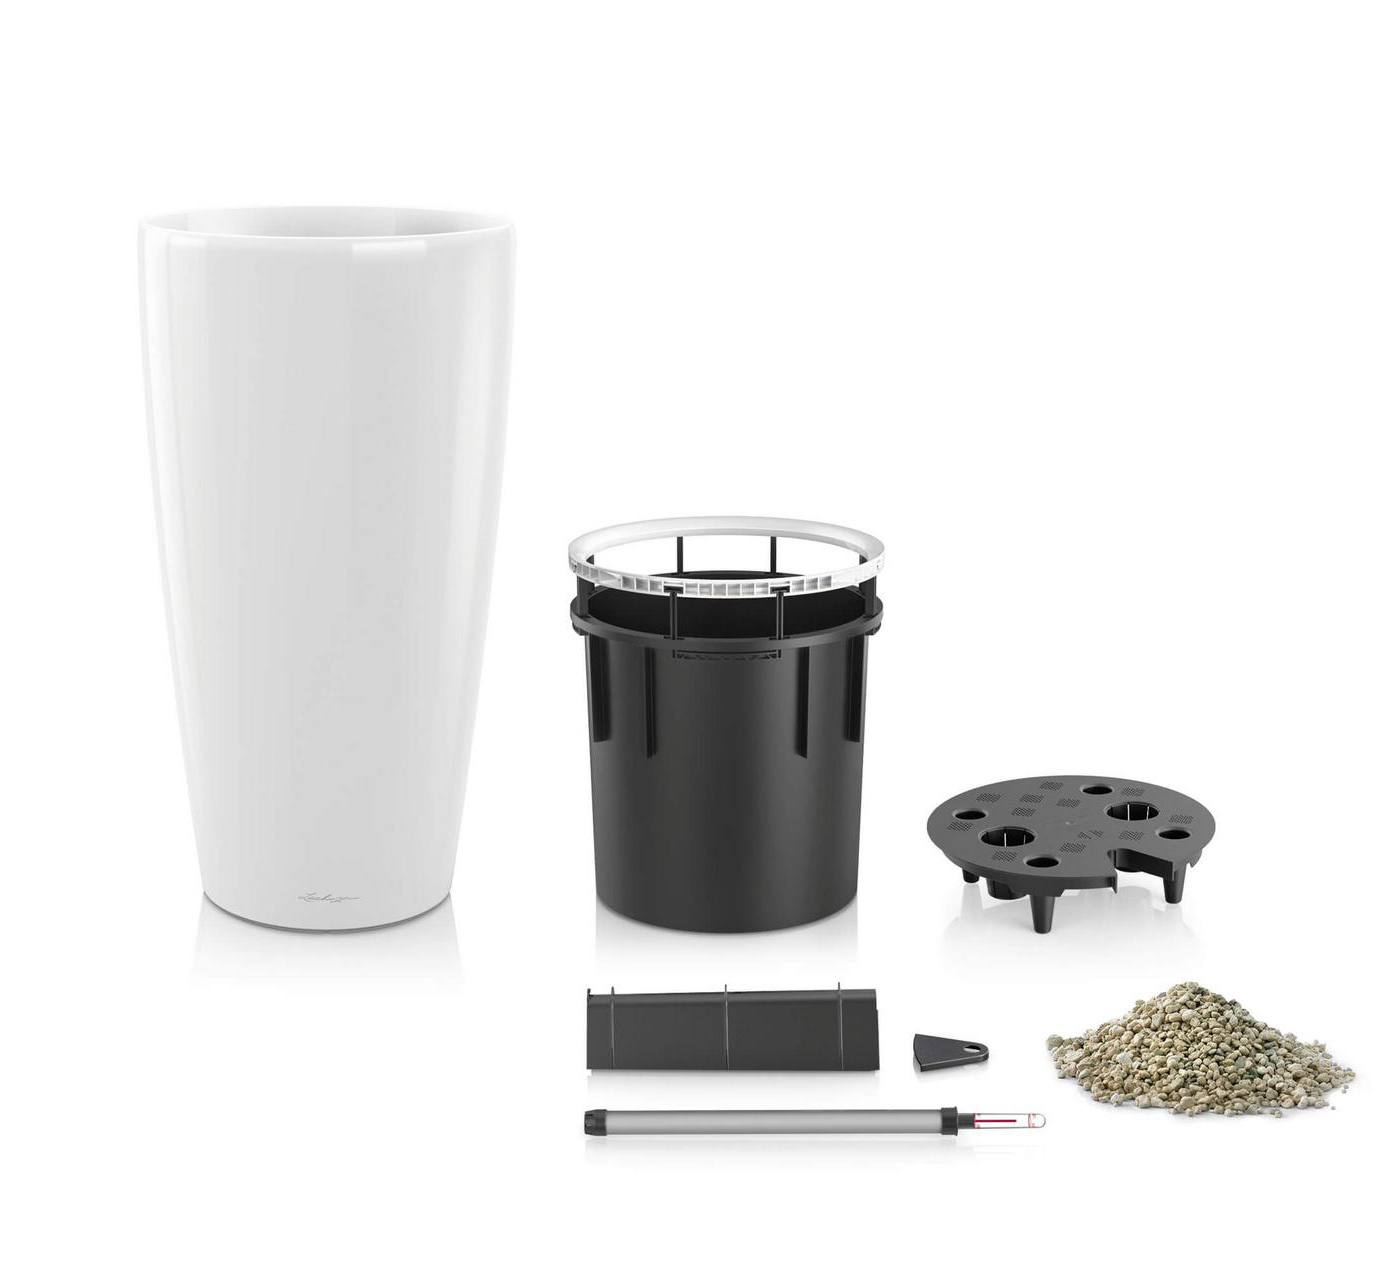 Rondo Self Watering pots kit